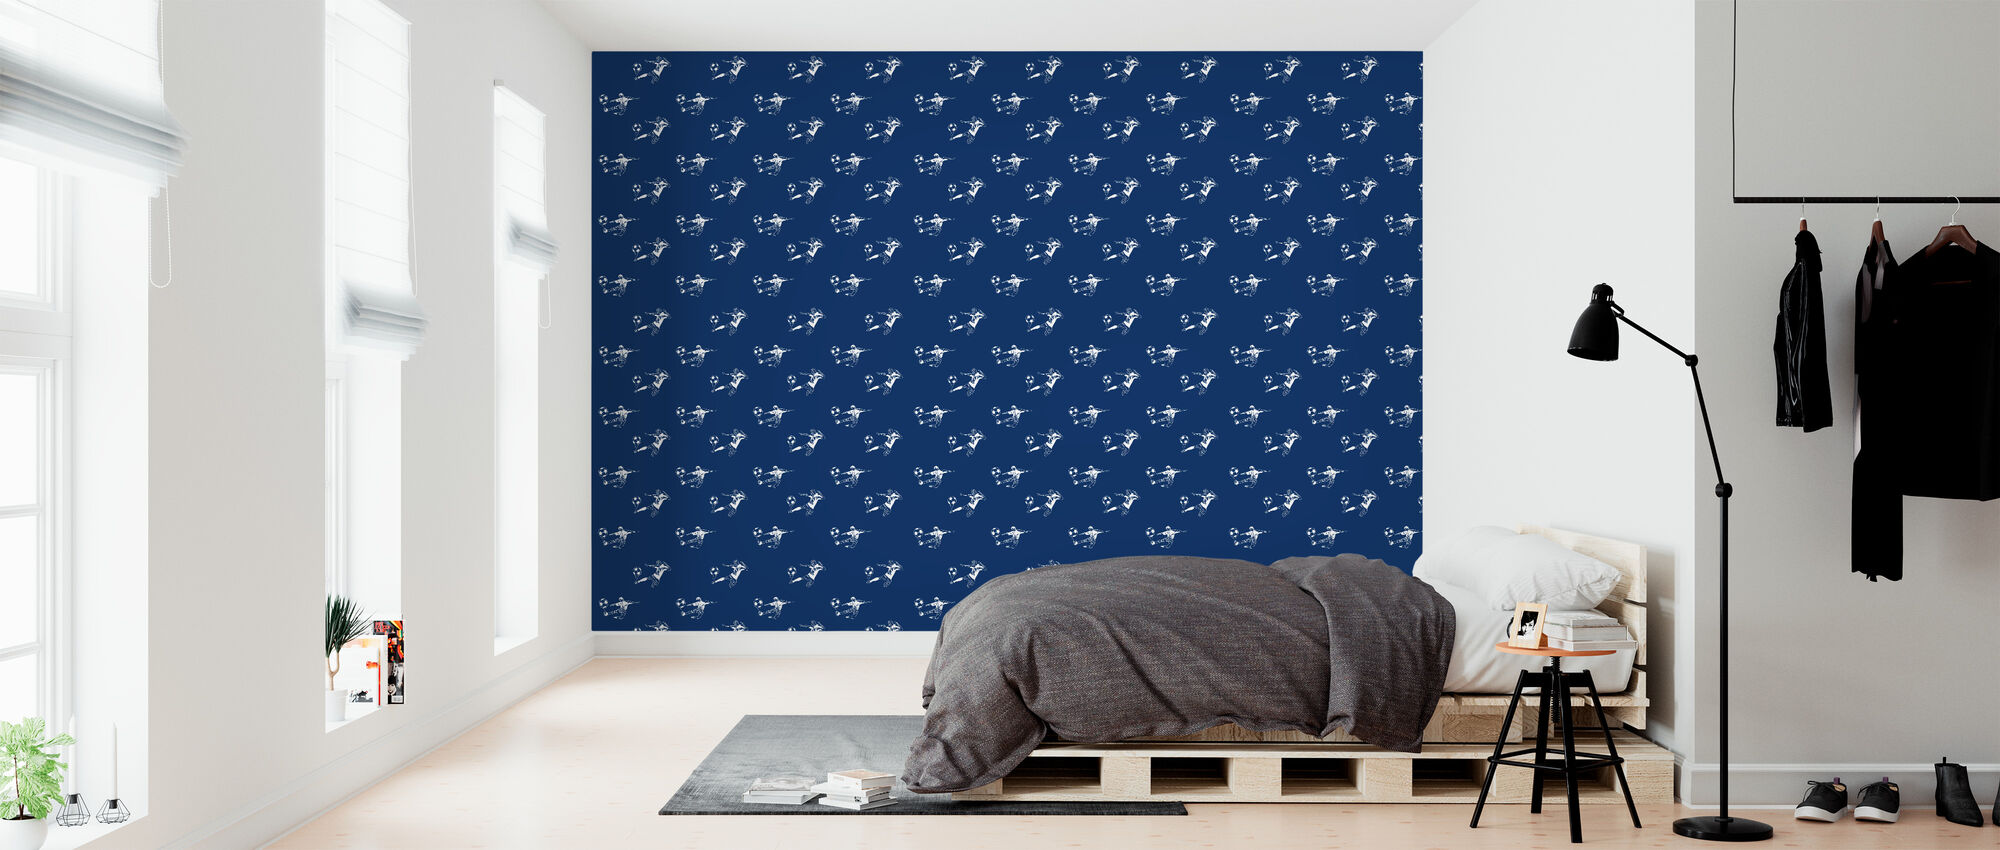 Kick It - Dark Blue Pattern - Wallpaper - Bedroom